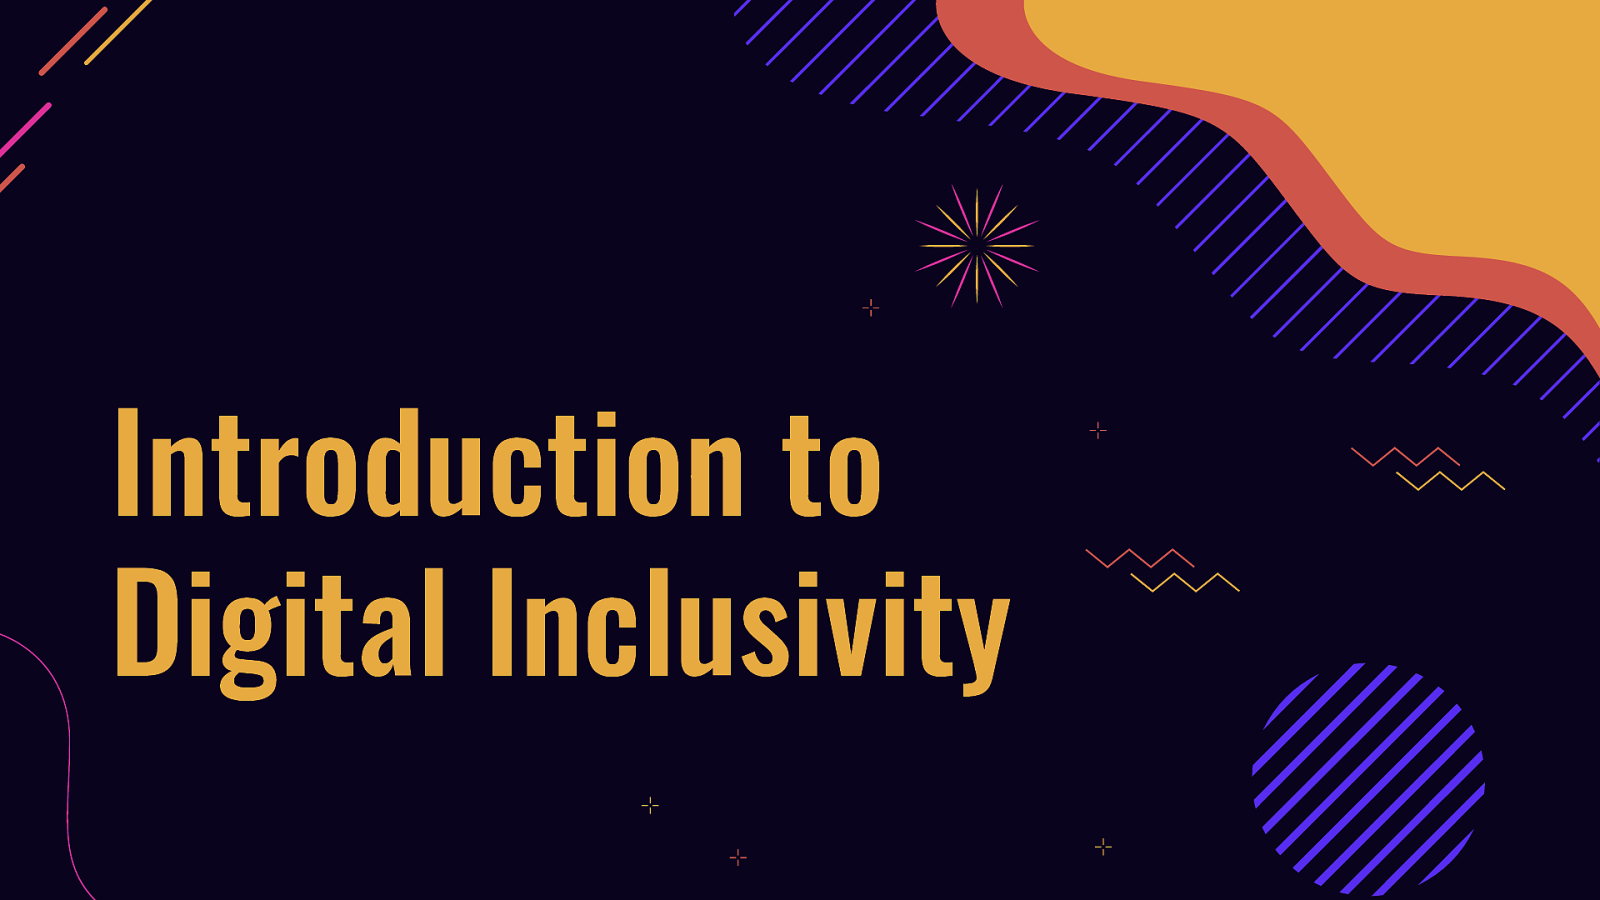 Introduction to Digital Inclusivity